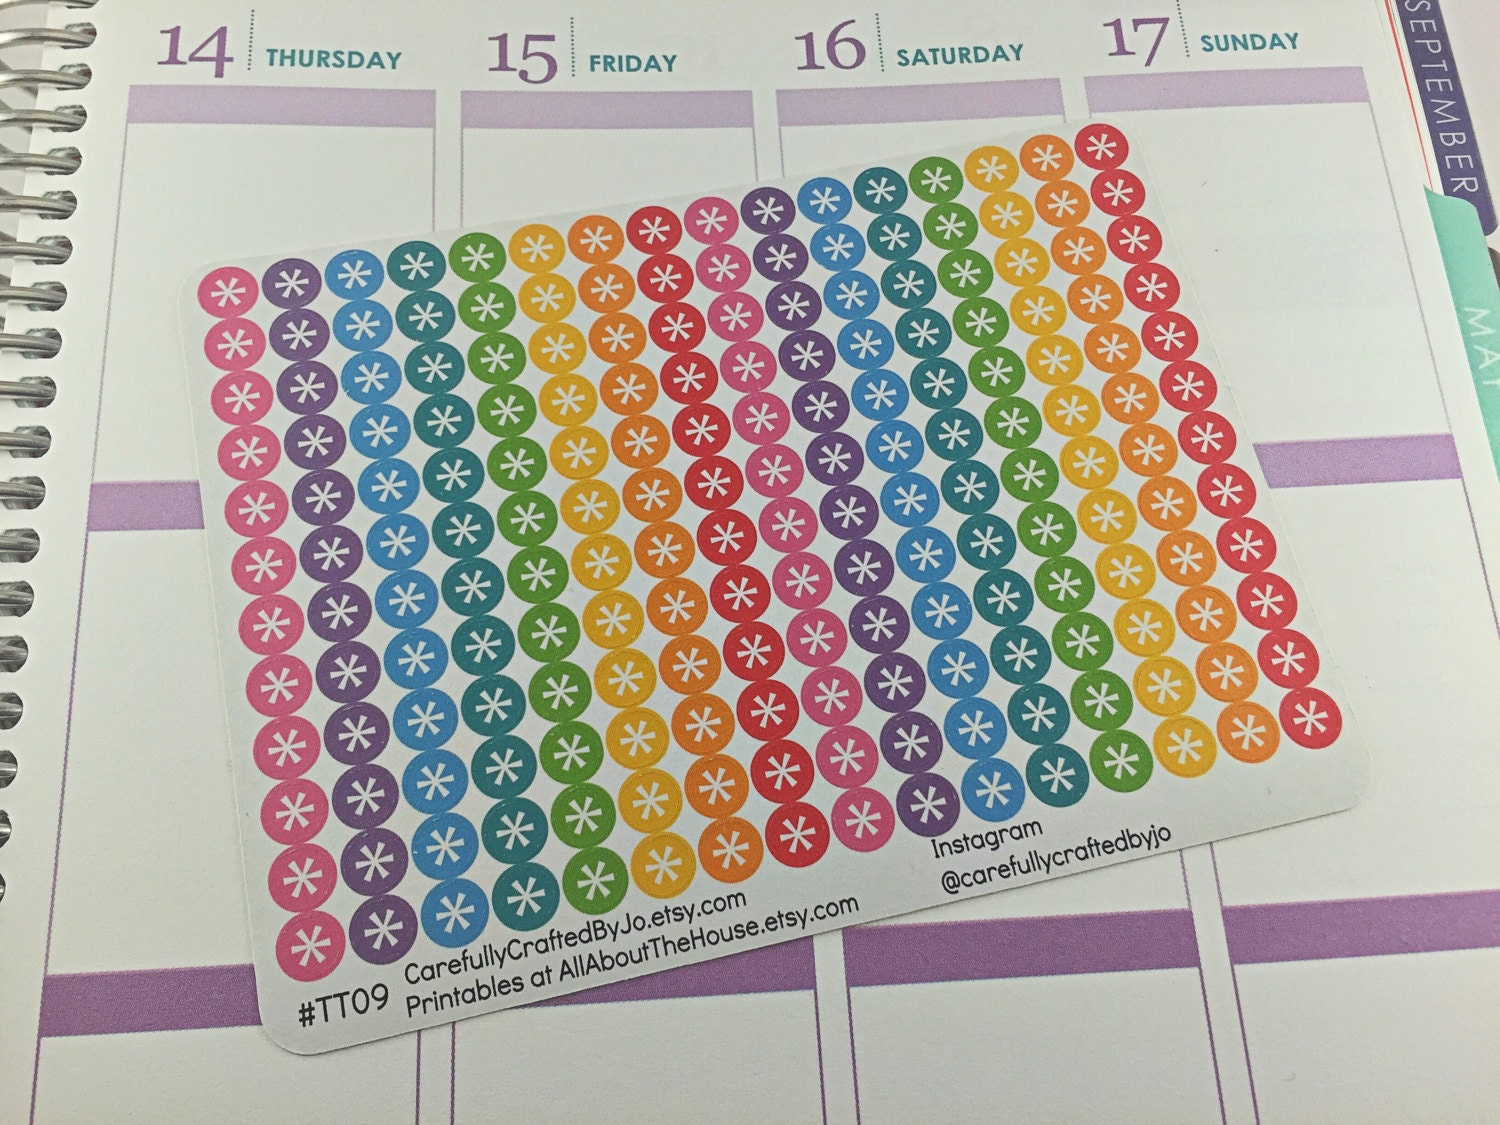 asterisk planner stickers, rainbow, eclp, vertical, reminder, important, note, urgent, don't forget, icon, to do, task, list, checklist, happy planner